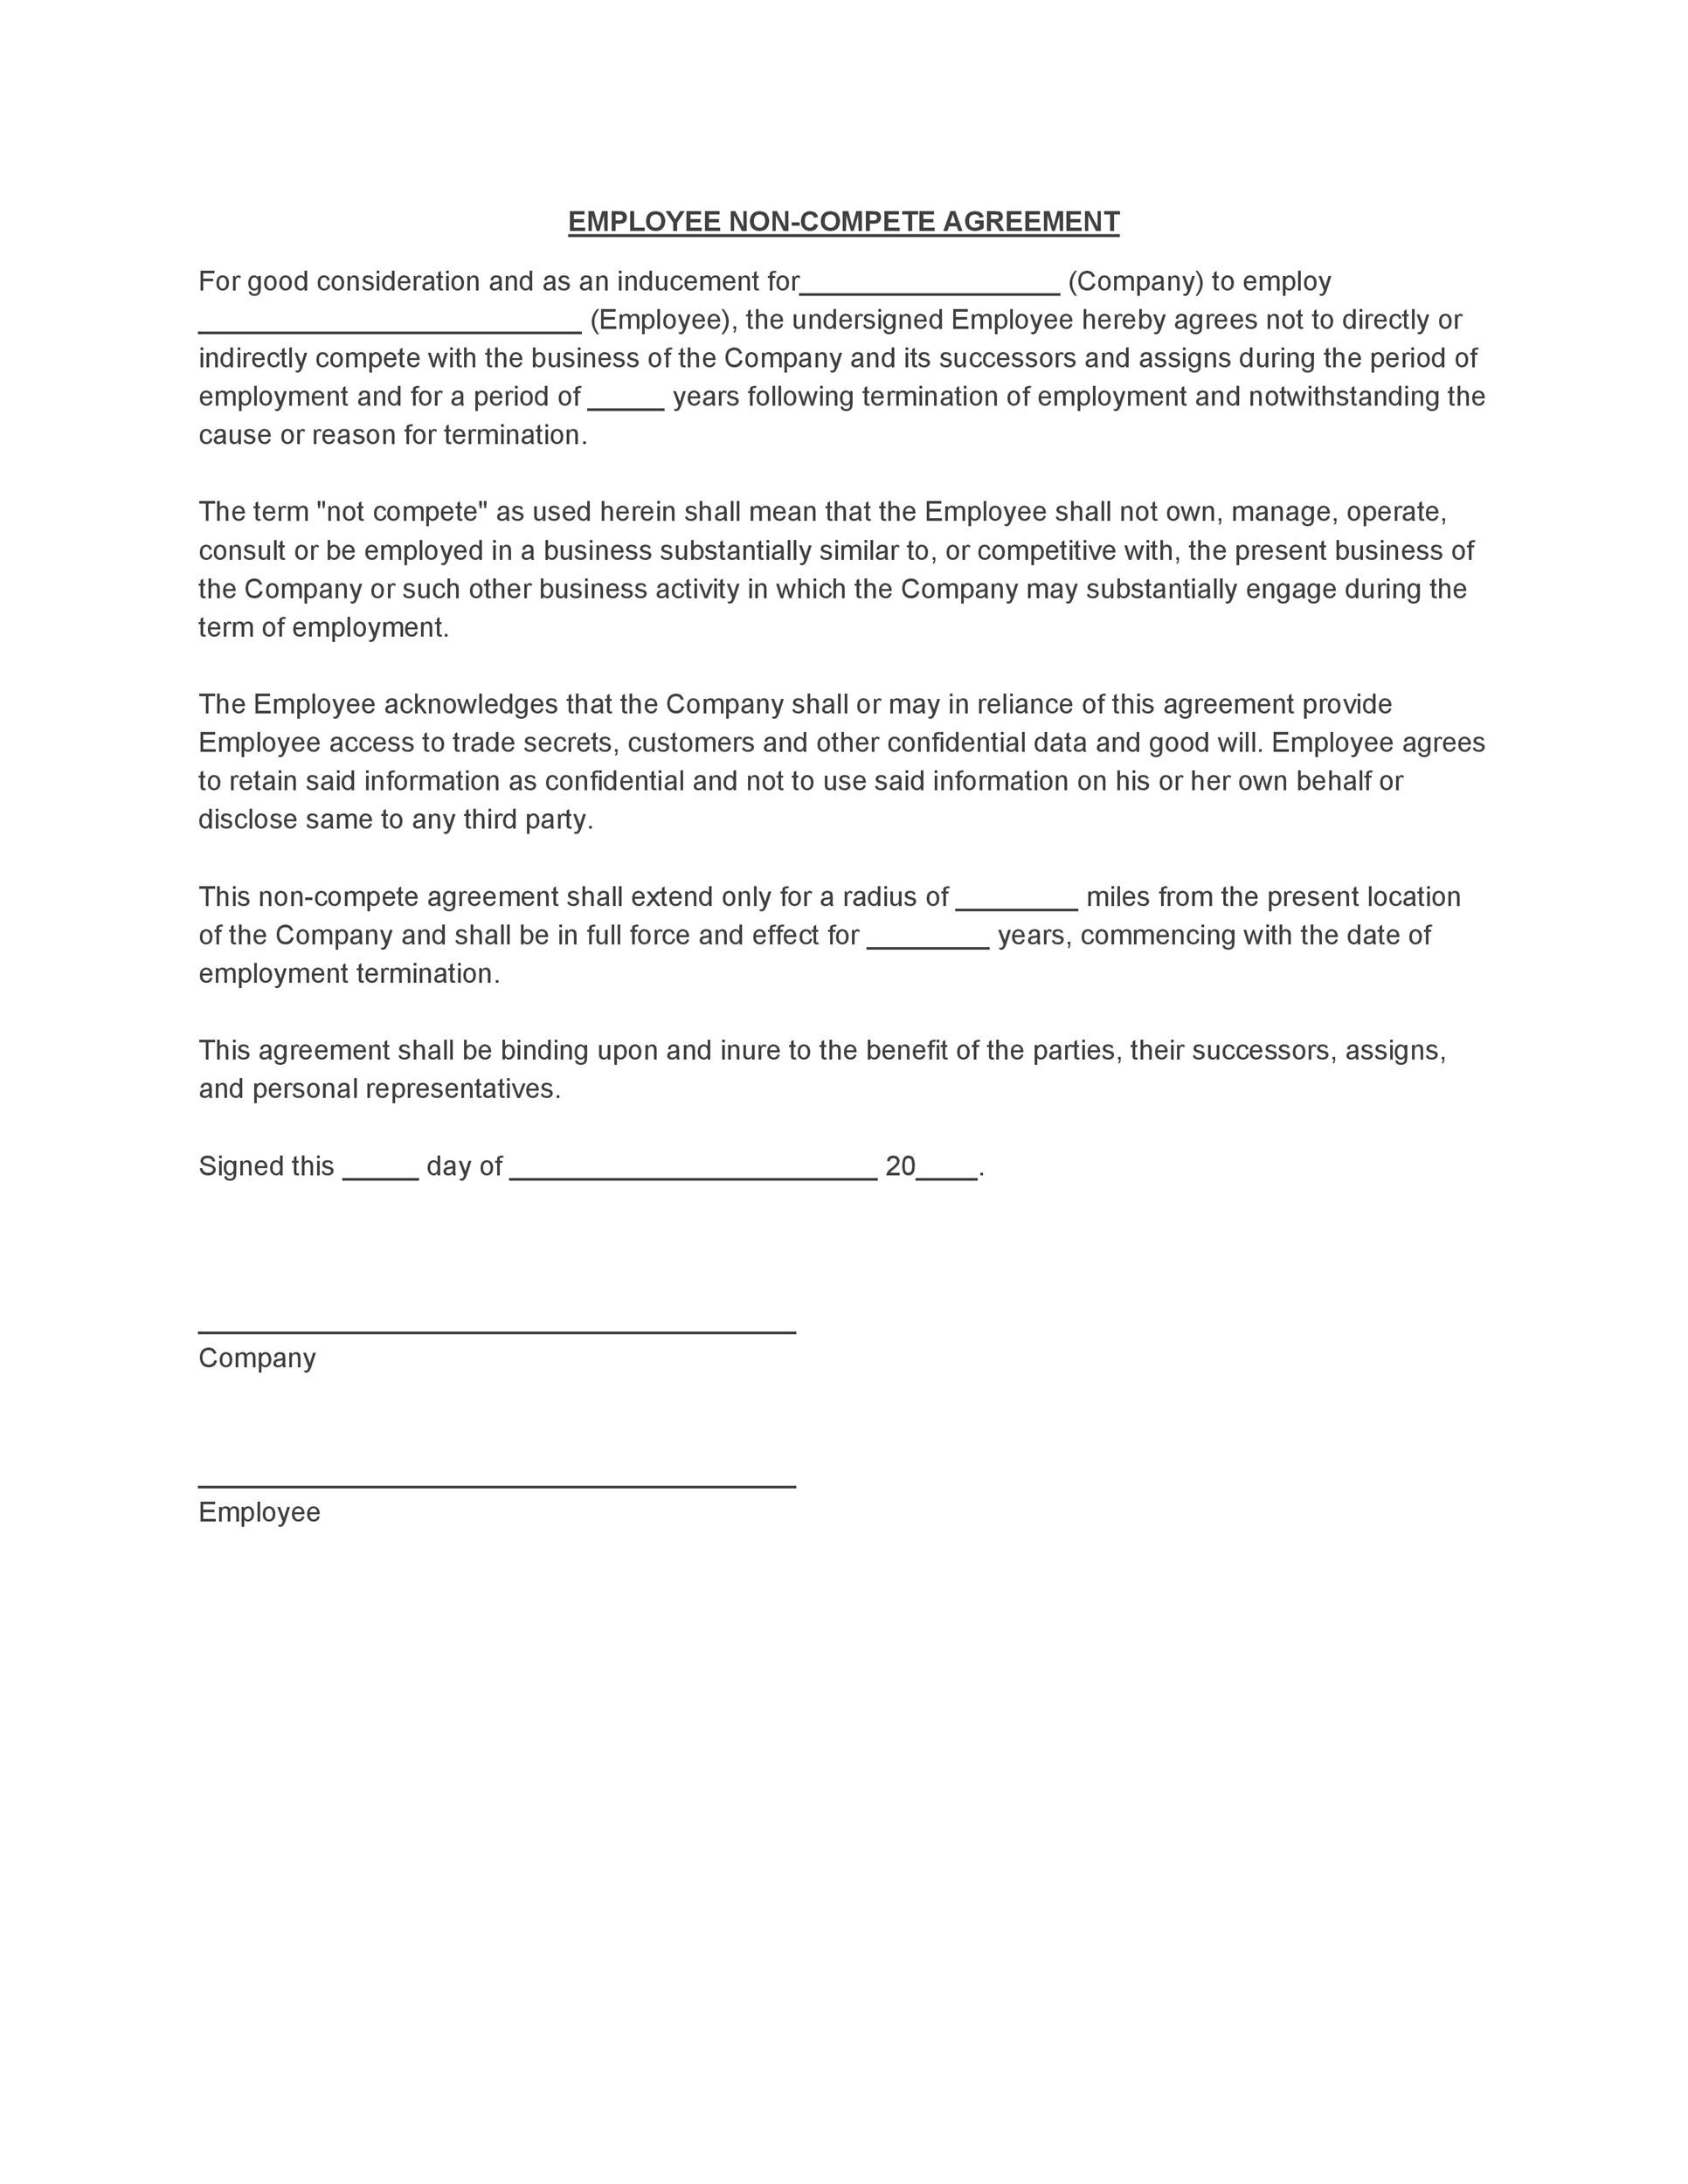 Free Non-Compete Agreement Template 13